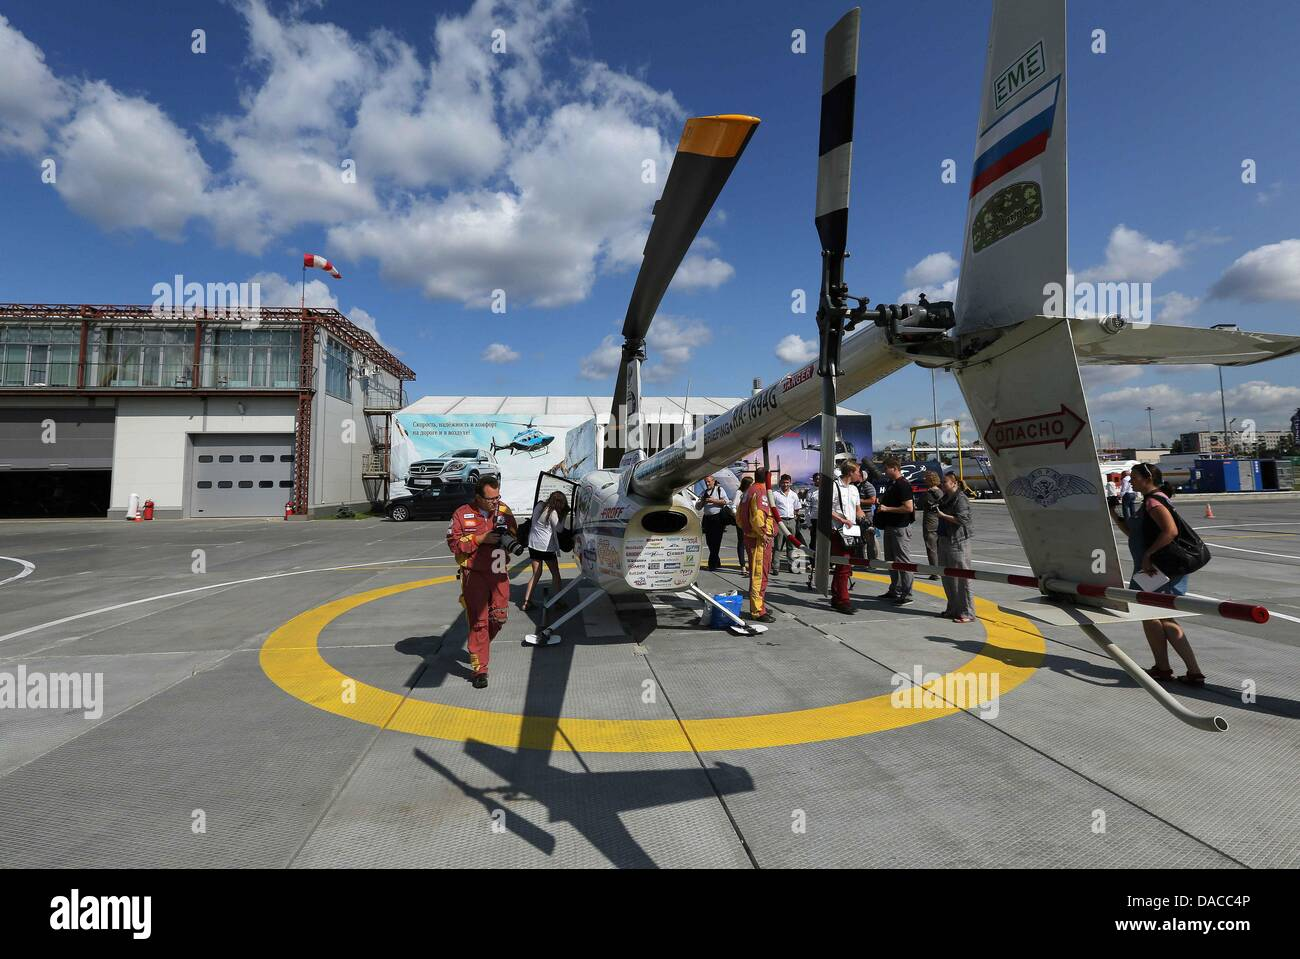 Jul. 10, 2013 - St Petersburg, Russia Ð July 9, 2013 from Moscow's Domodedovo airport launched a helicopter - Stock Image